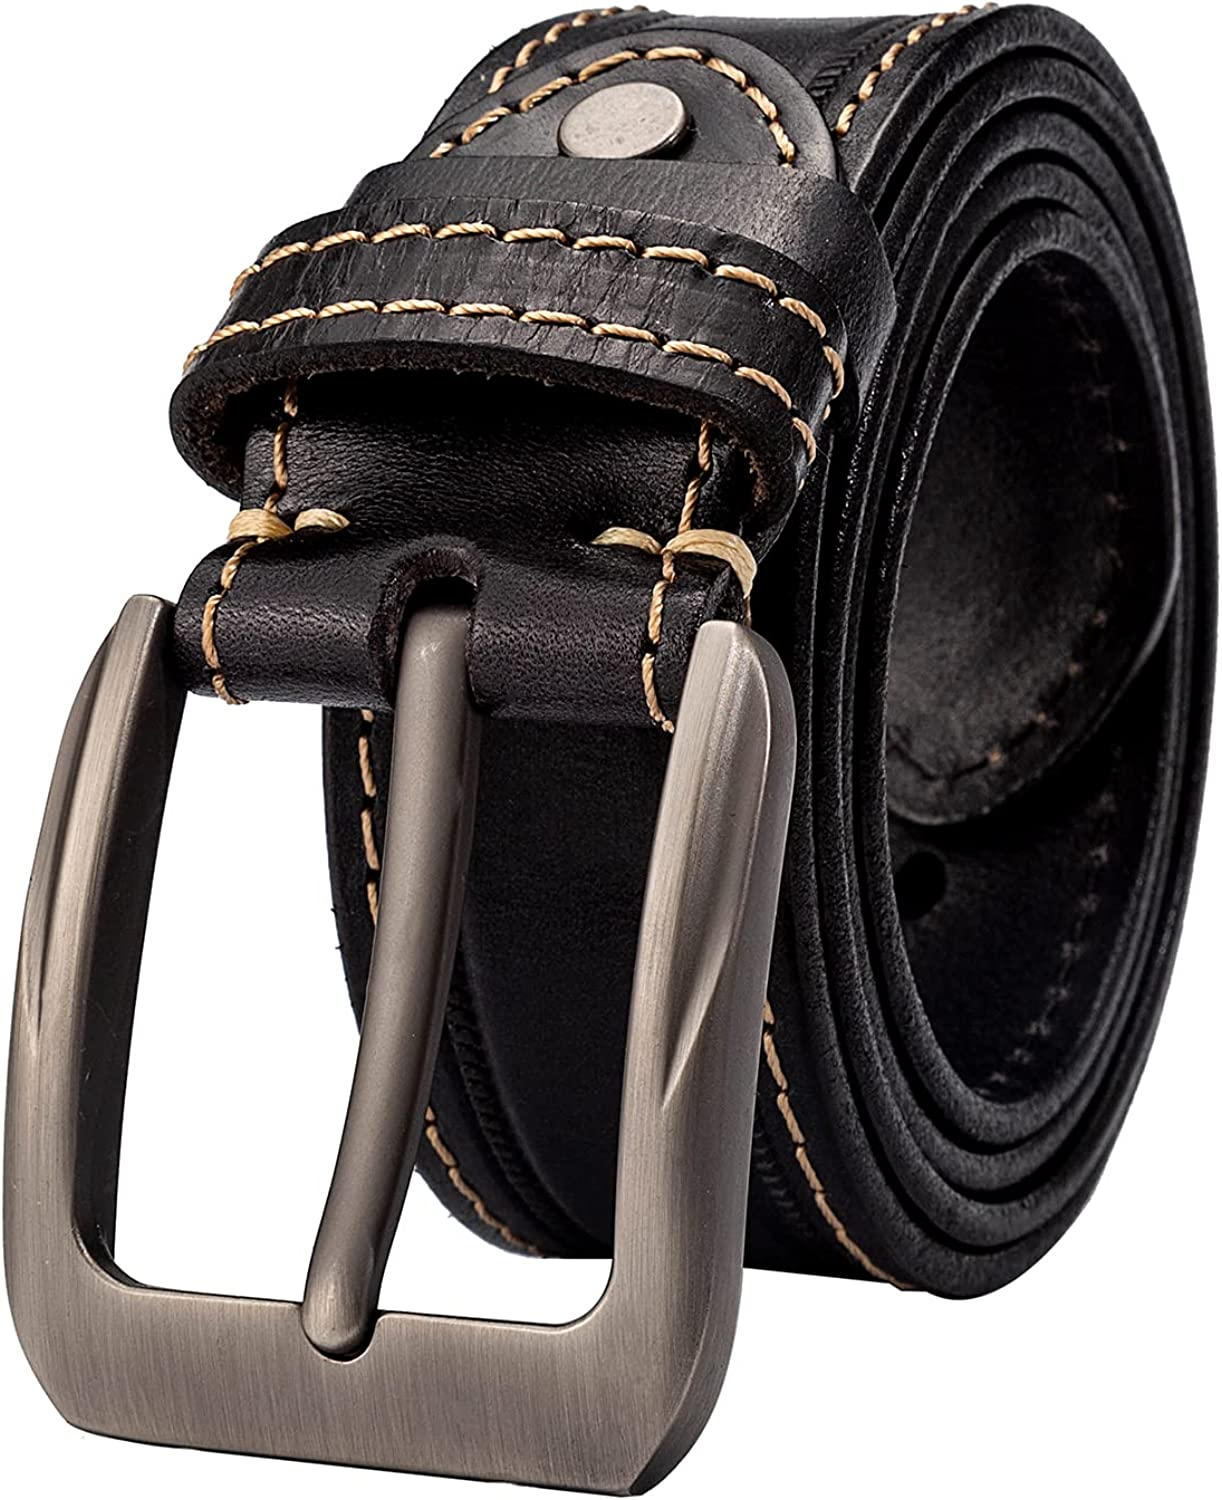 Genuine Leather Belt Spring new work for Men Max 78% OFF 1.5 Brown Wide Wo Casual Jeans